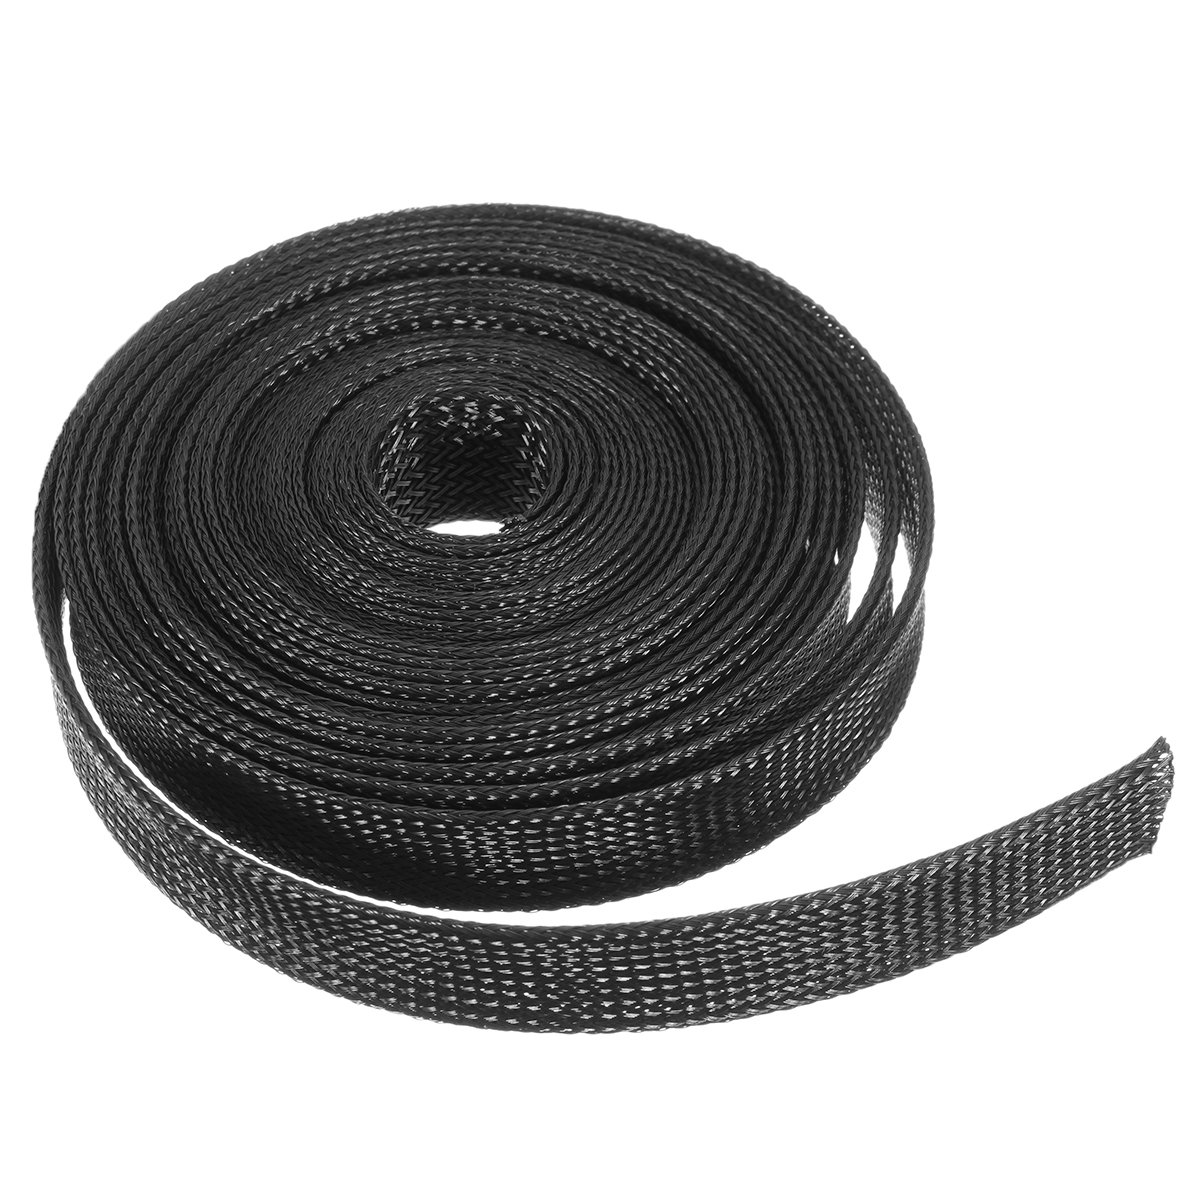 KINGDUO 6M 8Mm//10Mm//12Mm//15Mm//20Mm Wire Cable Sheathing Expandable Sleeving Braided Loom Tubing Black-8Mm